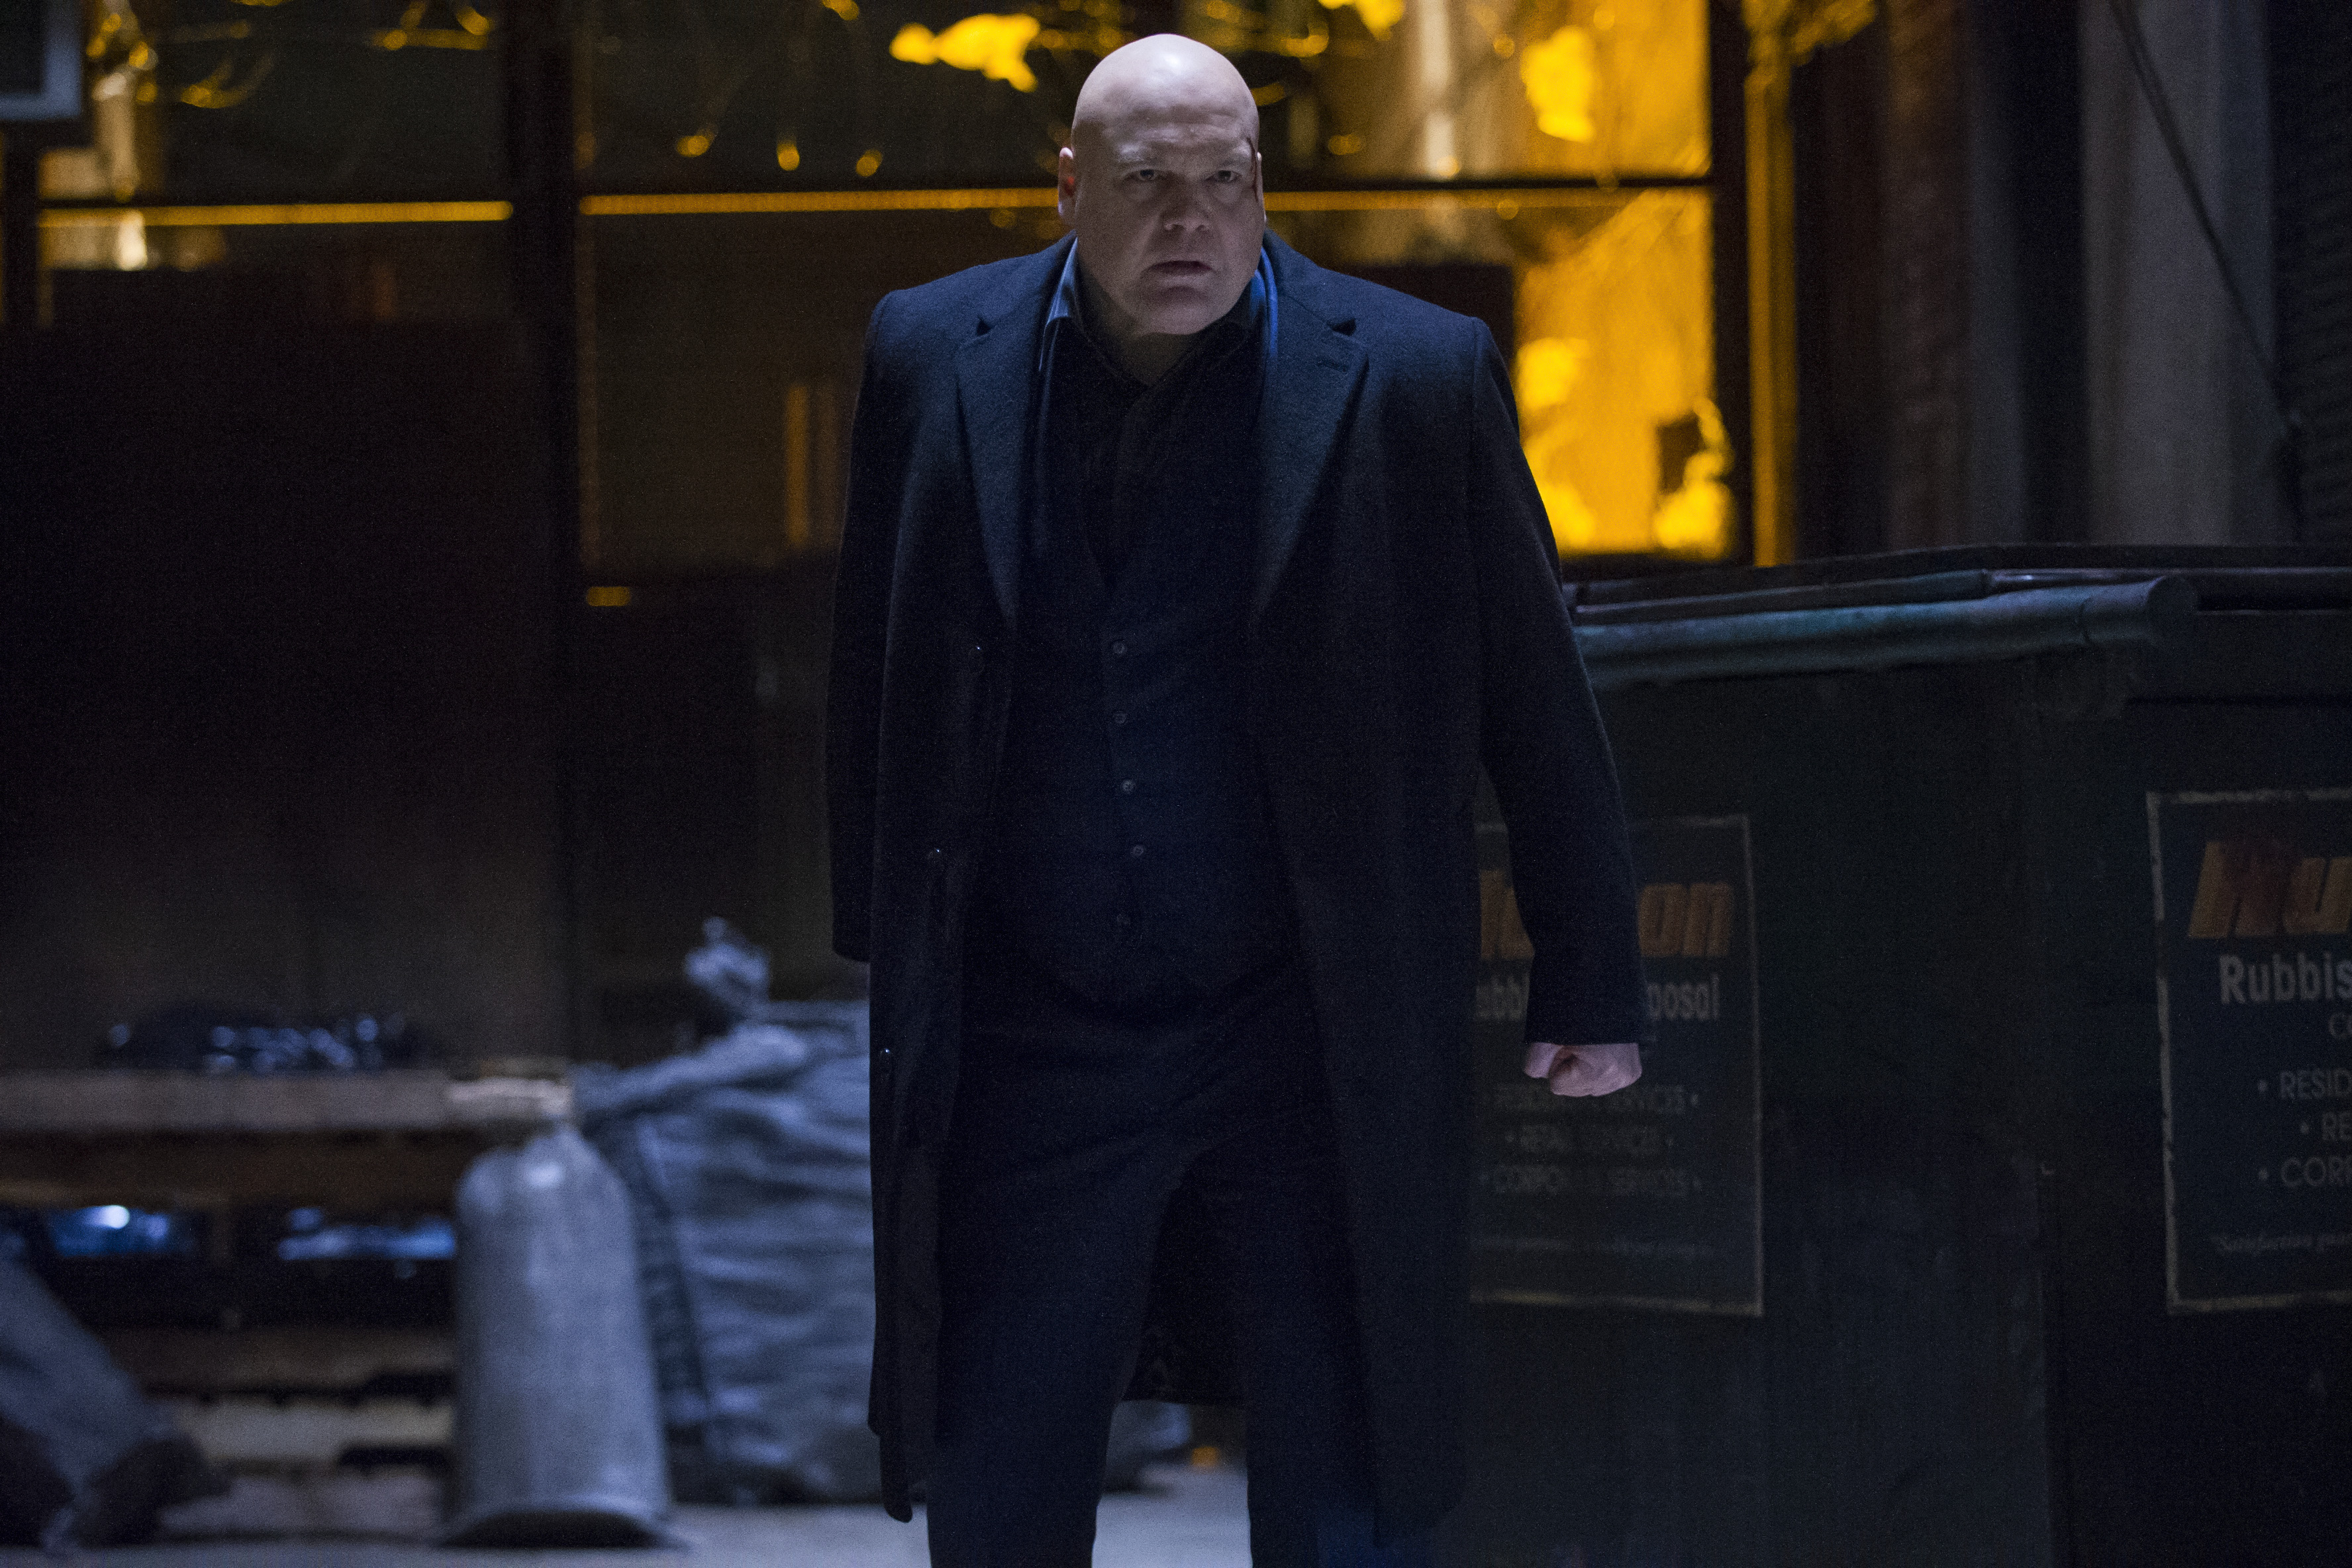 Daredevil Season 3 to Bring Back Vincent D'Onofrio as Wilson Fisk